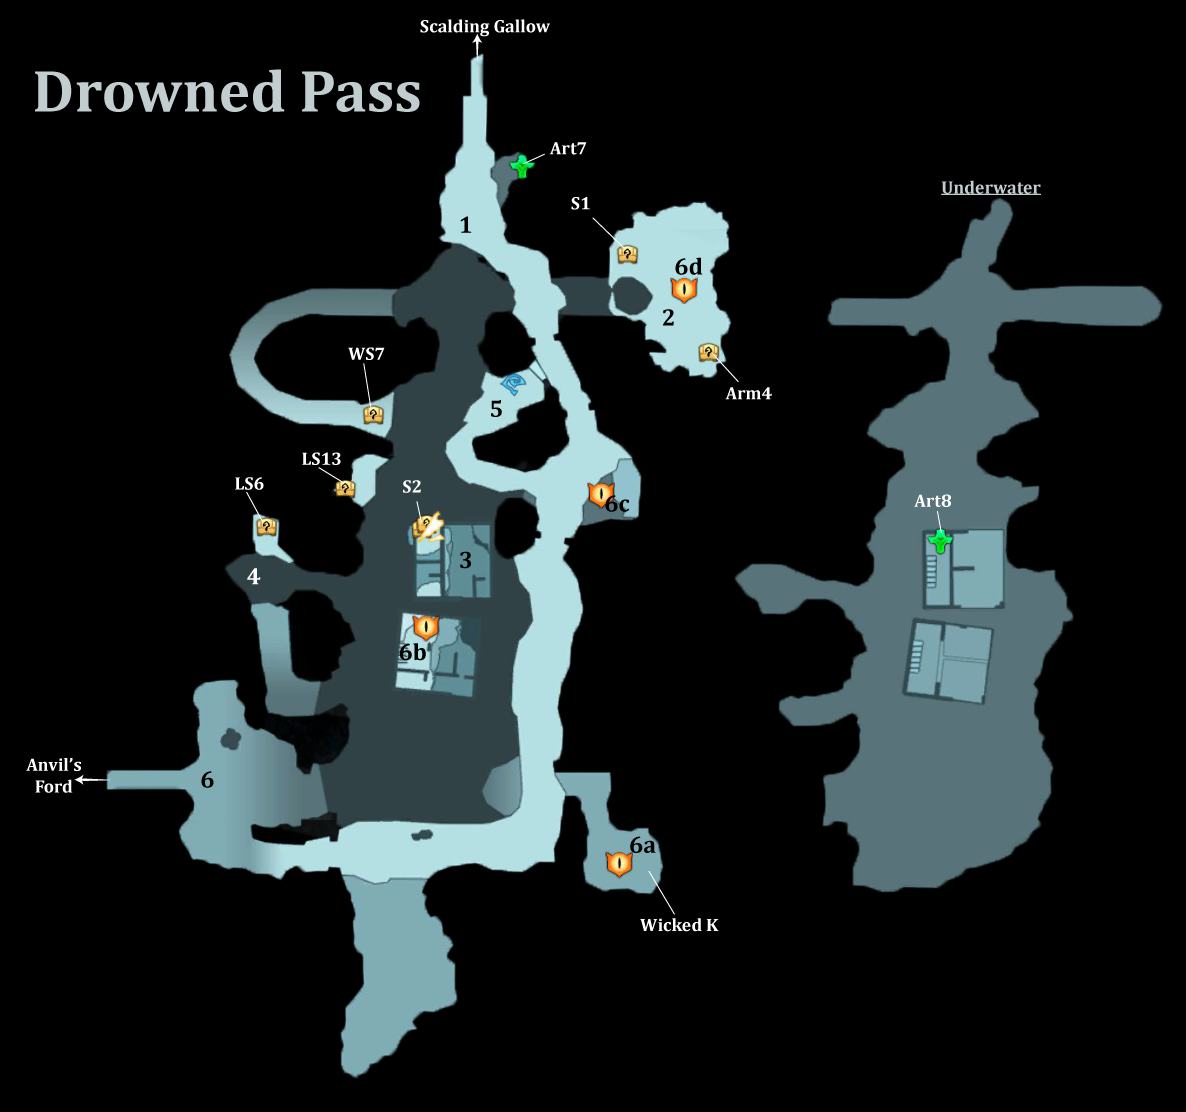 Drowned Pass Map  sc 1 st  Darksiders Wikia - Fandom & Darksiders Walkthrough | Darksiders Wiki | FANDOM powered by Wikia